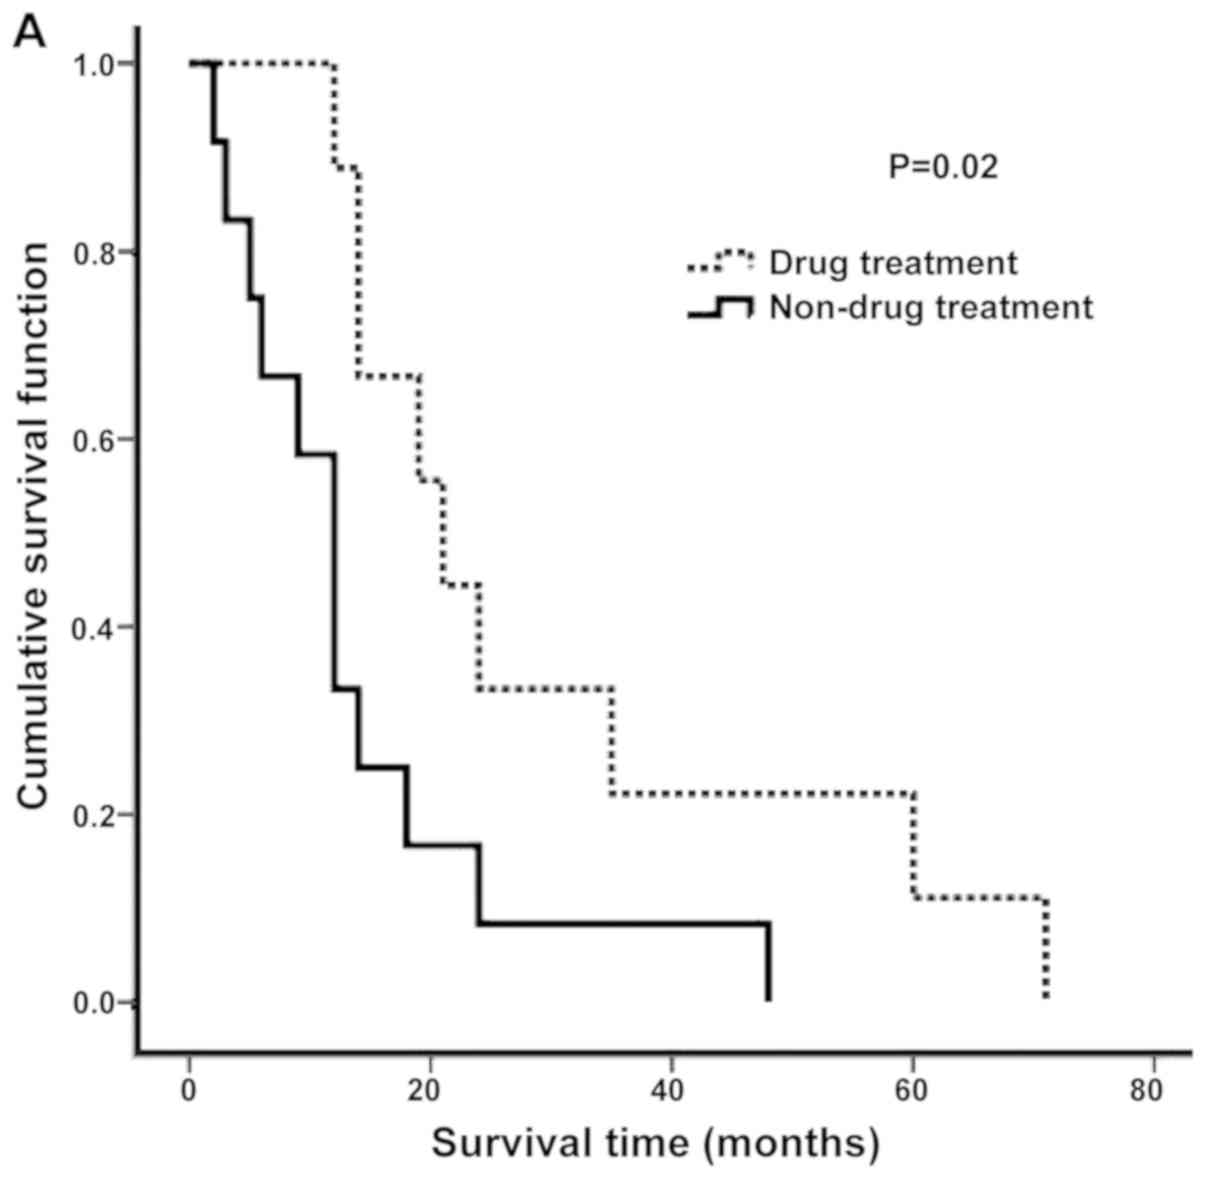 Analysis Of The Factors Influencing The Survival Time Of Patients With Sarcomatoid Renal Cell Carcinoma